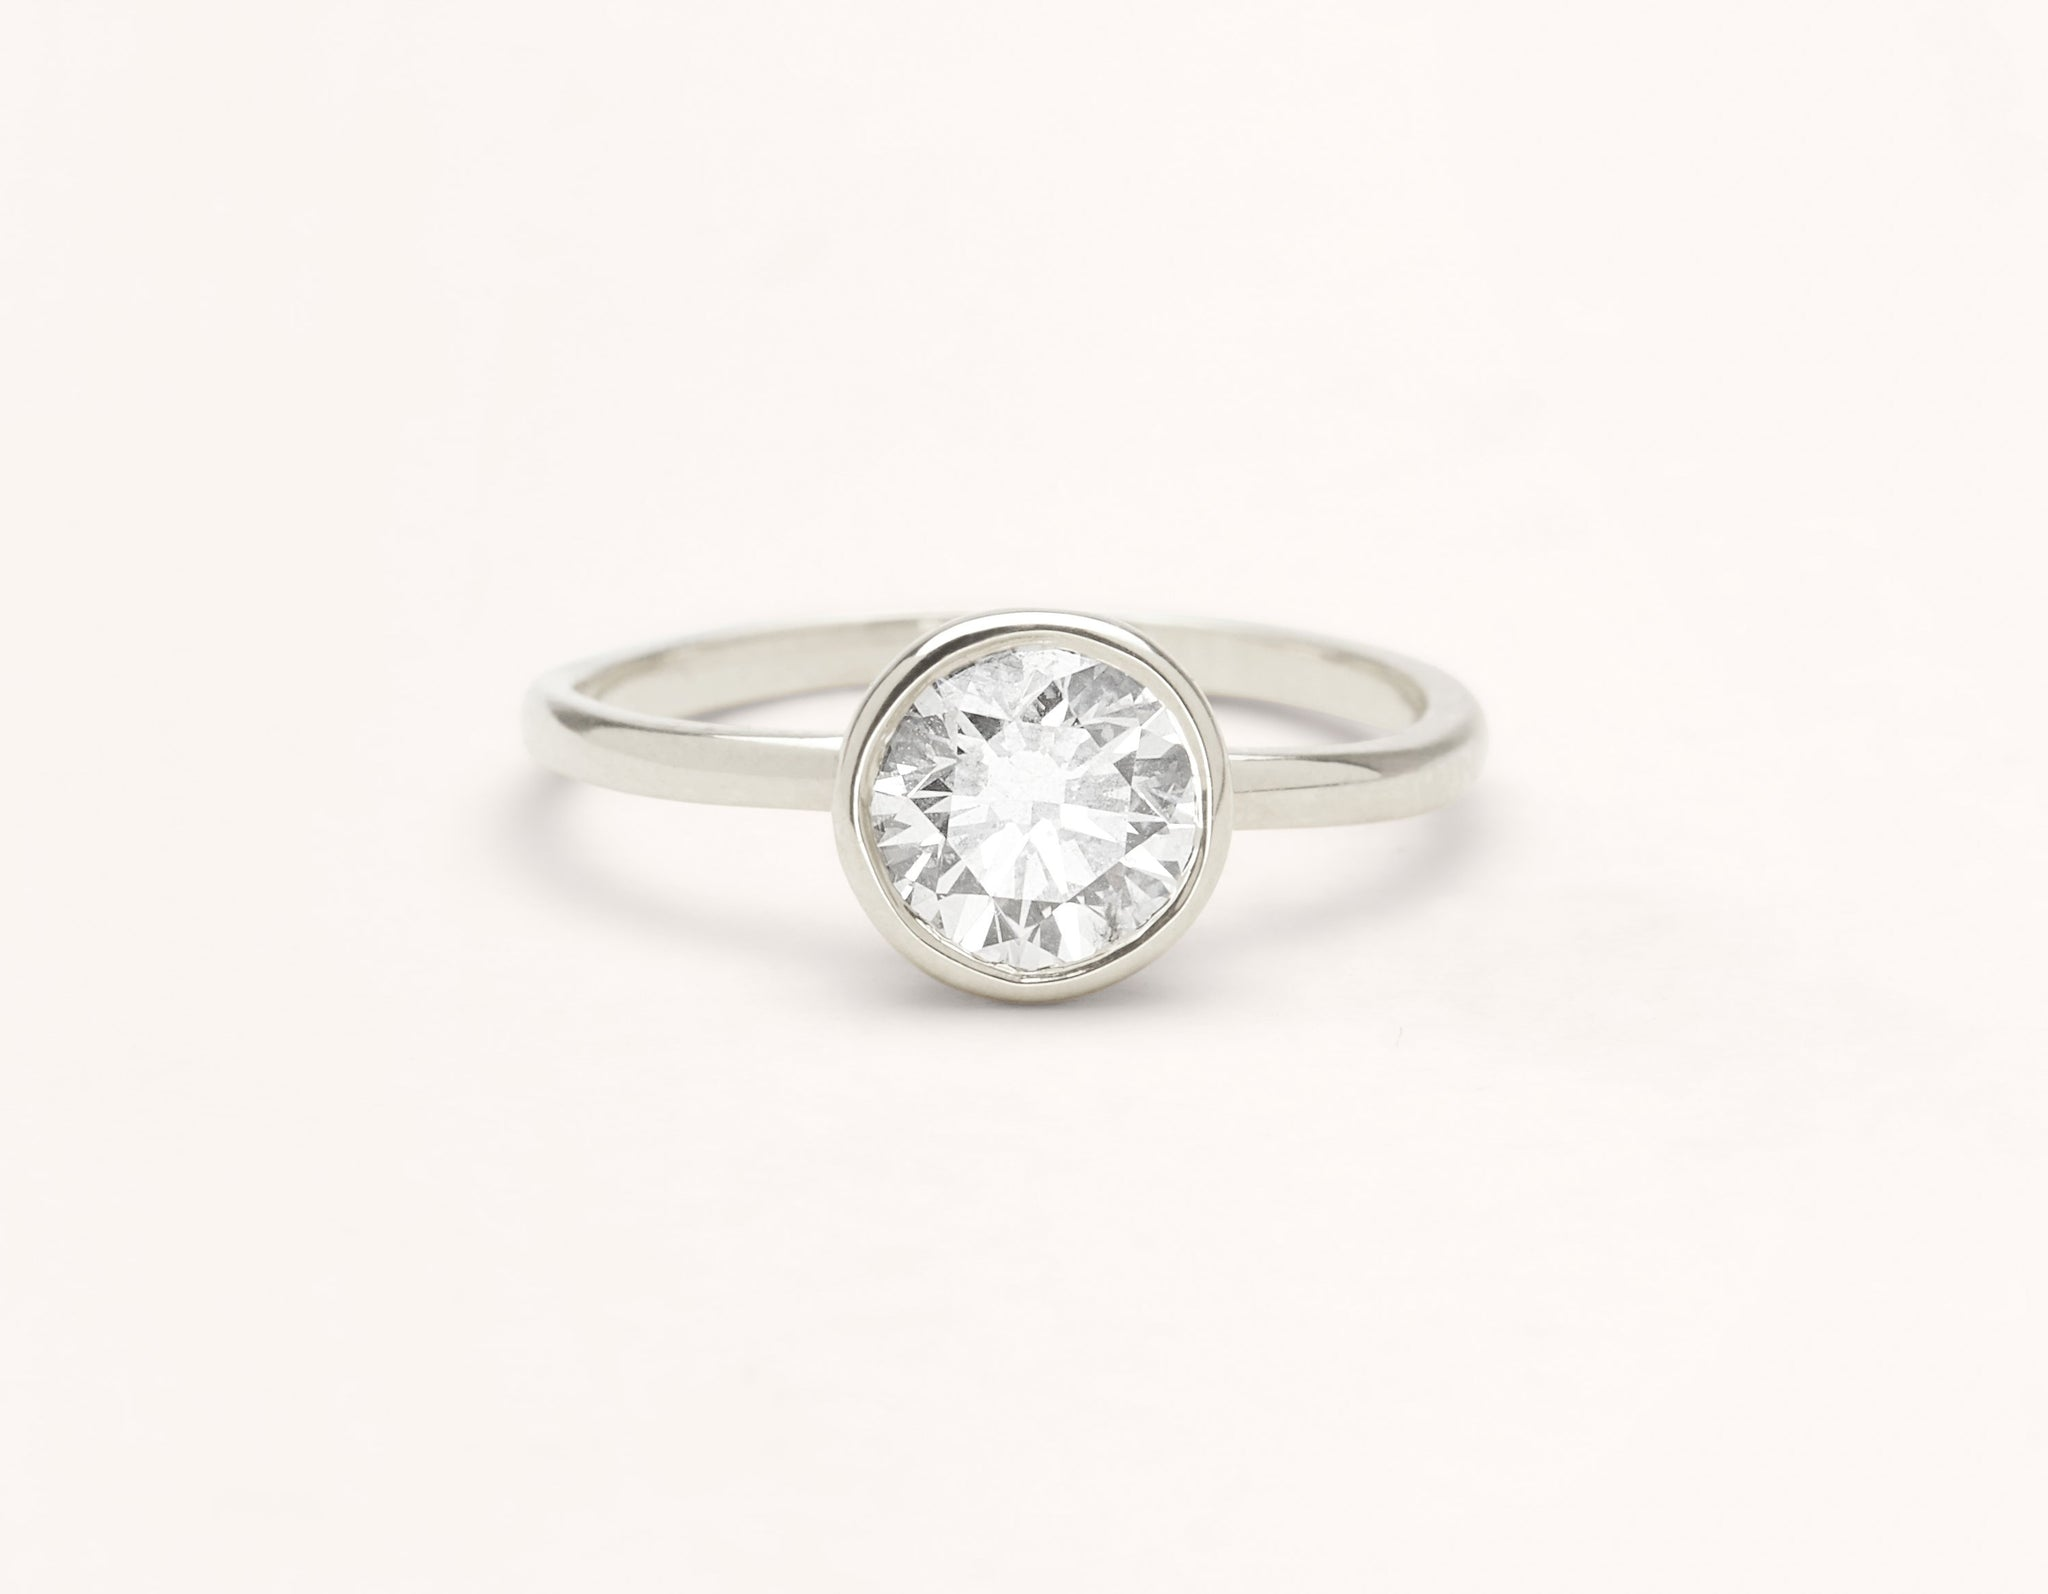 Minimalist 18k solid white gold Round Bezel engagement ring round brilliant cut 1 ct diamond Vrai and Oro